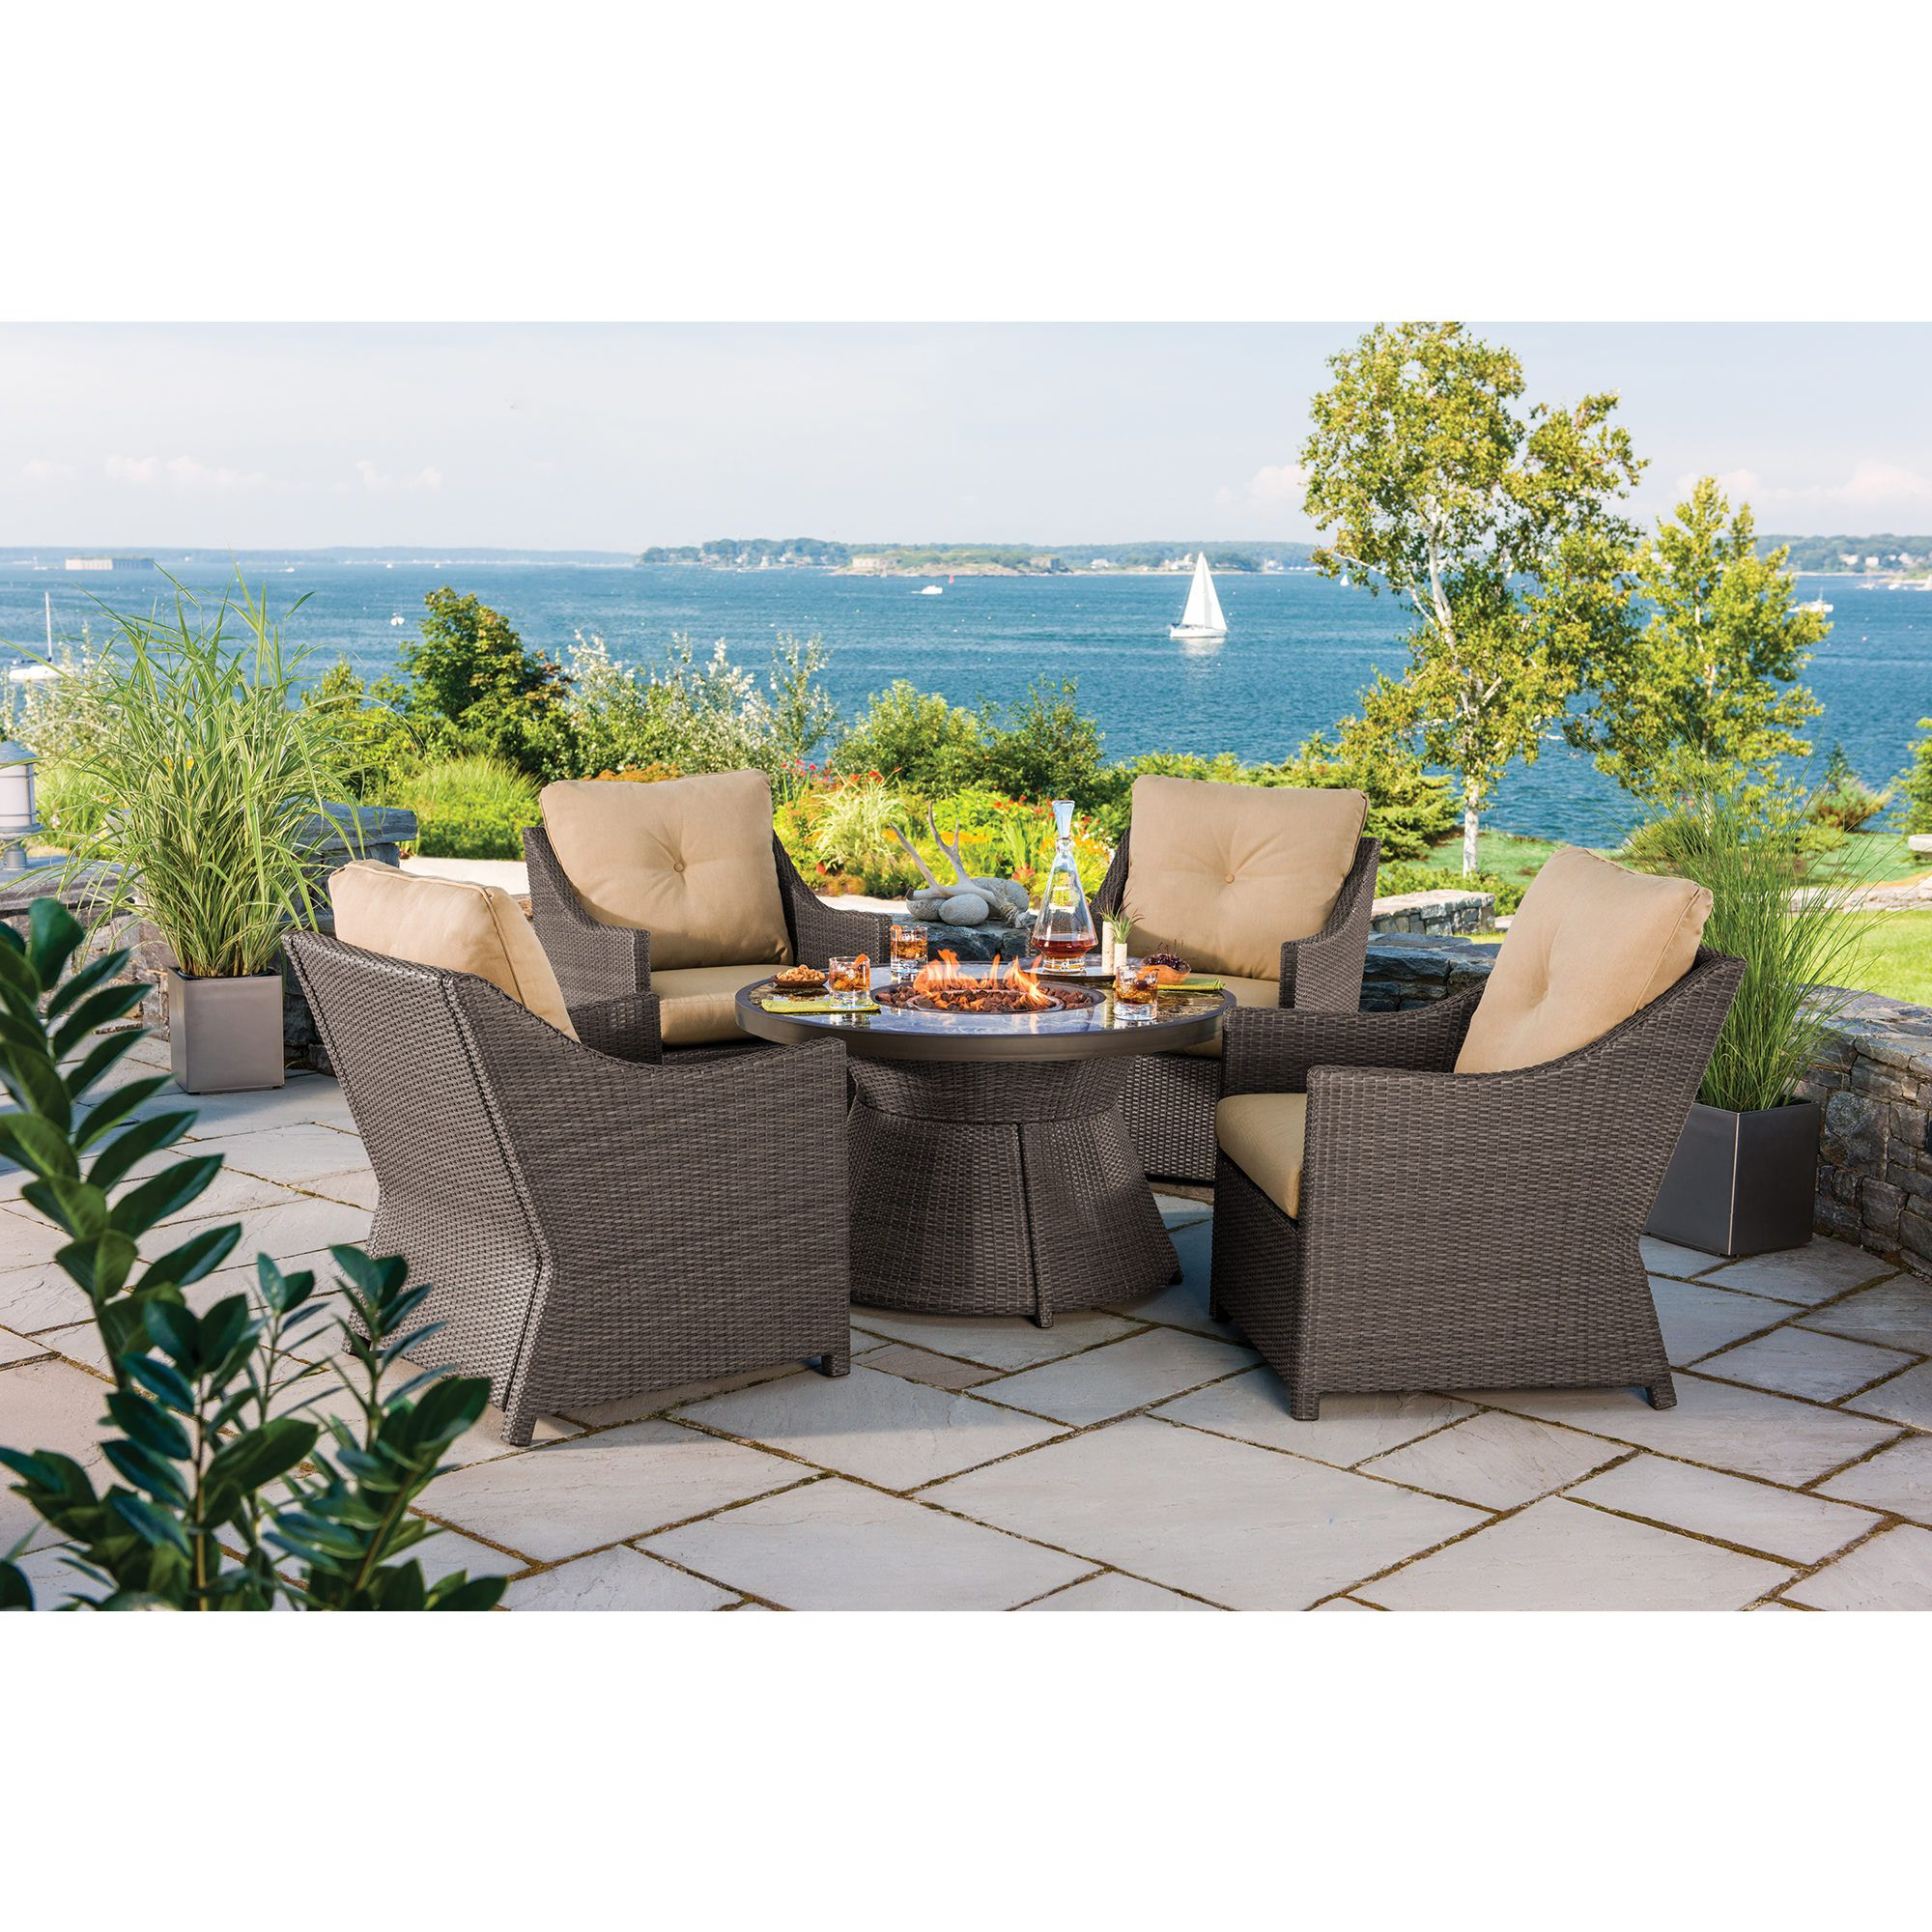 Berkley jensen antigua 5 piece wicker fire pit chat set for Wholesale patio furniture